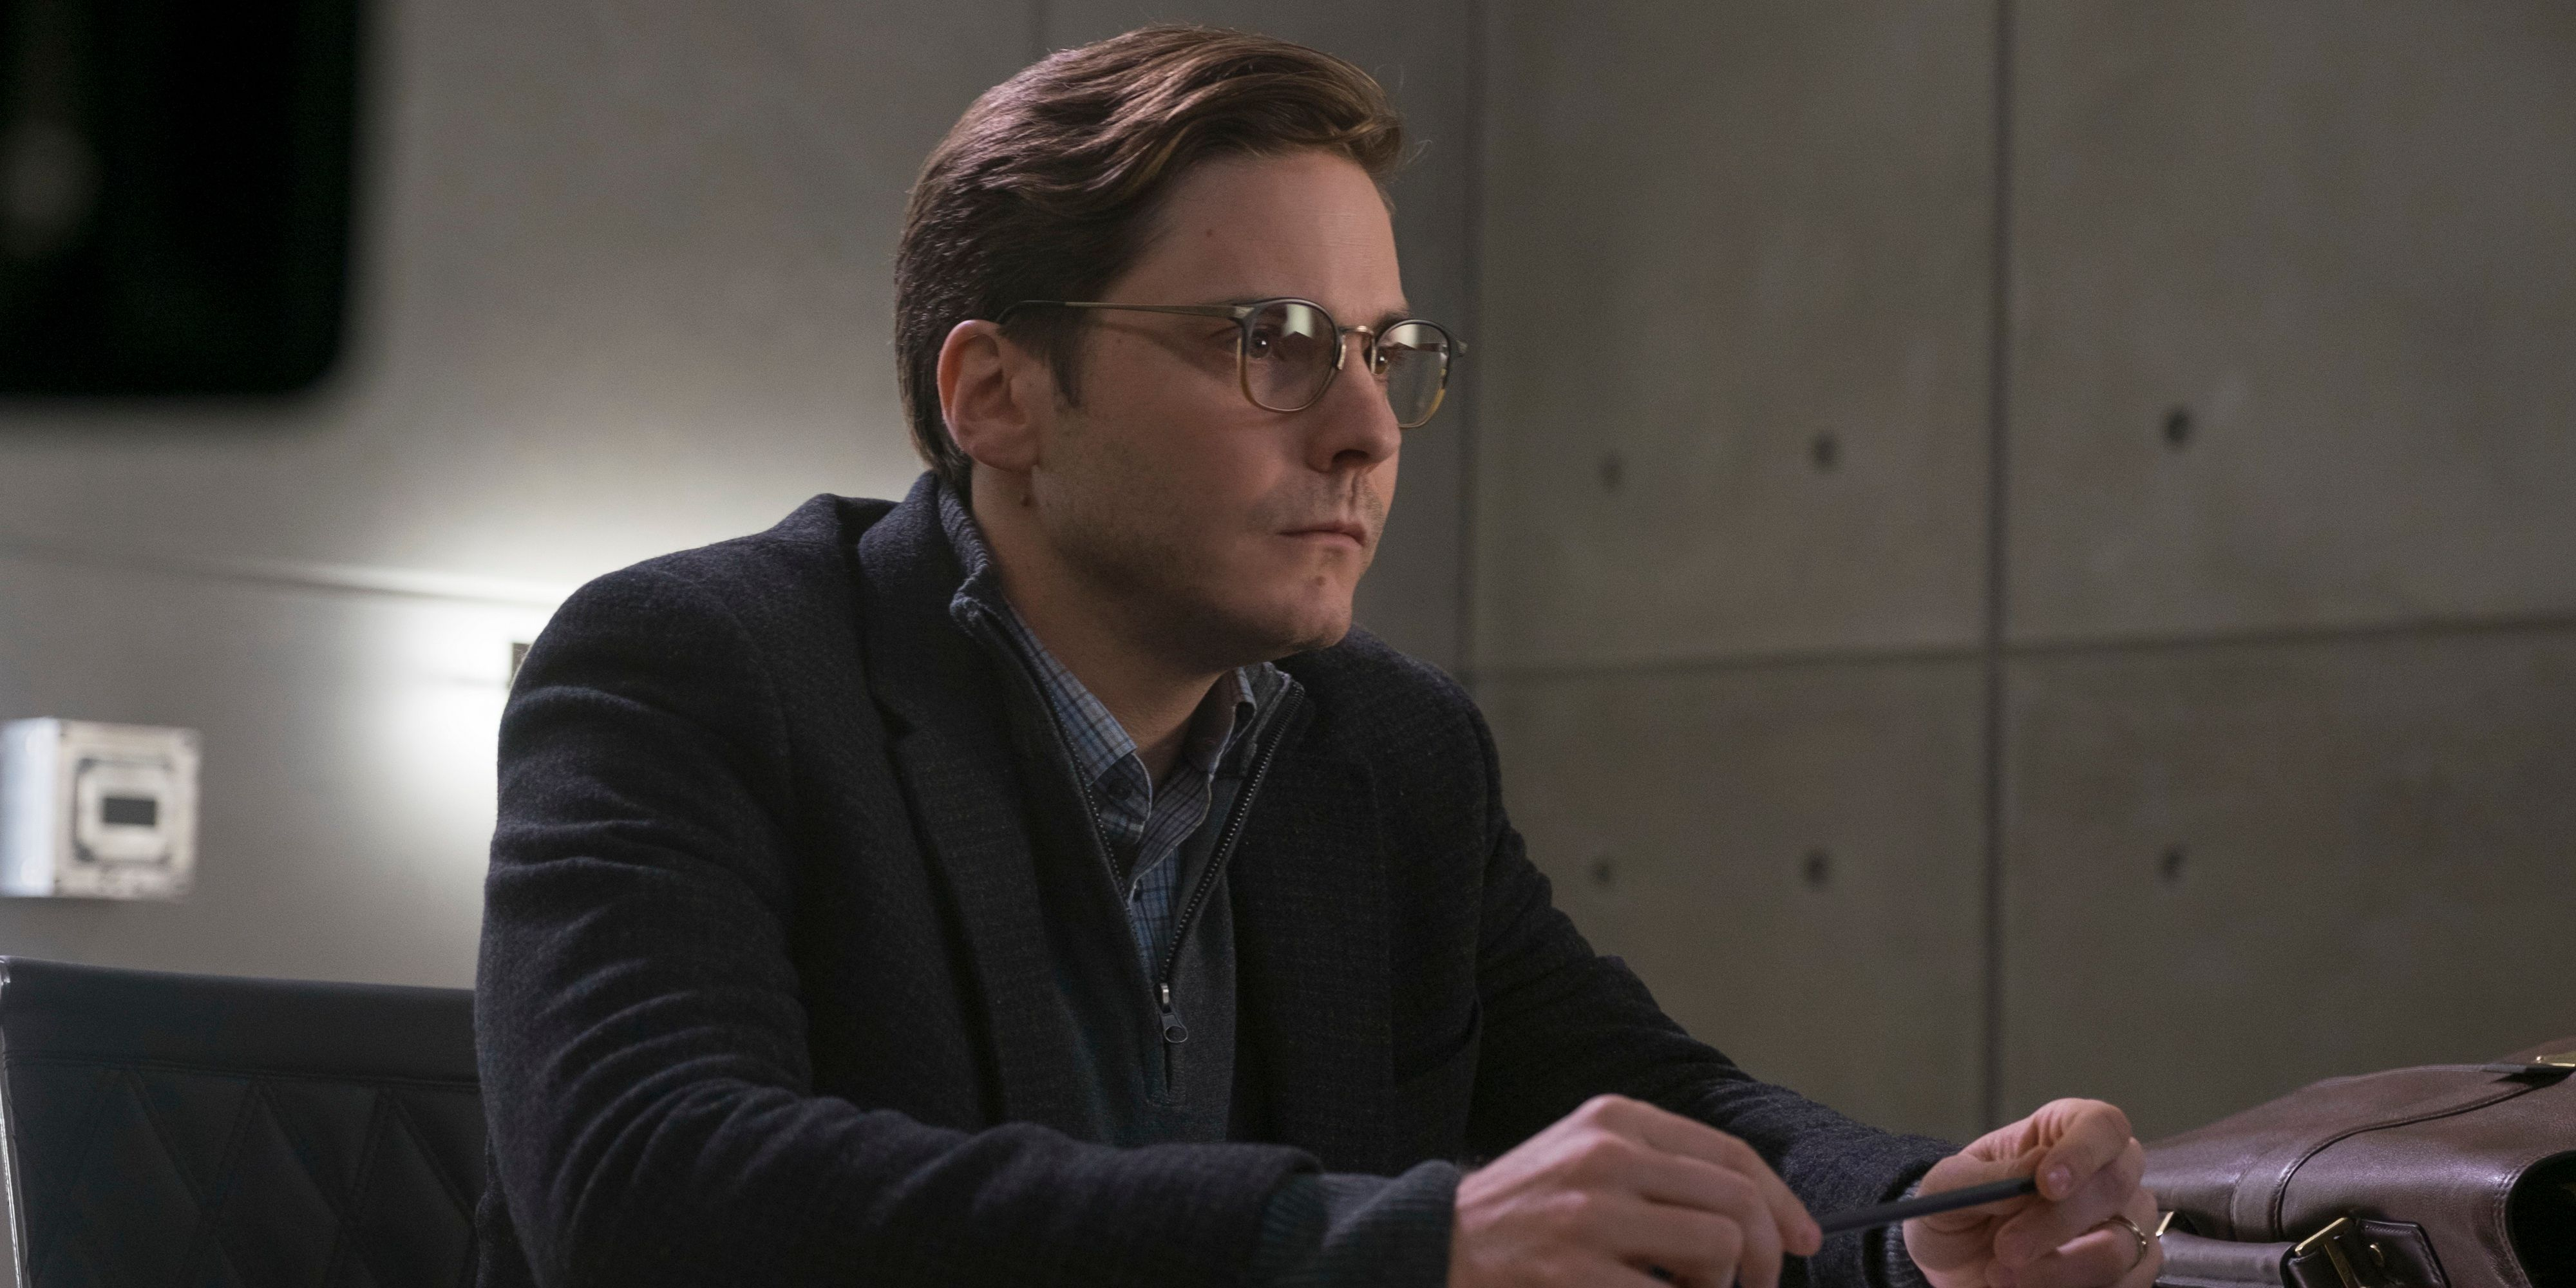 What Nobody Realized About Helmut Zemo in the MCU